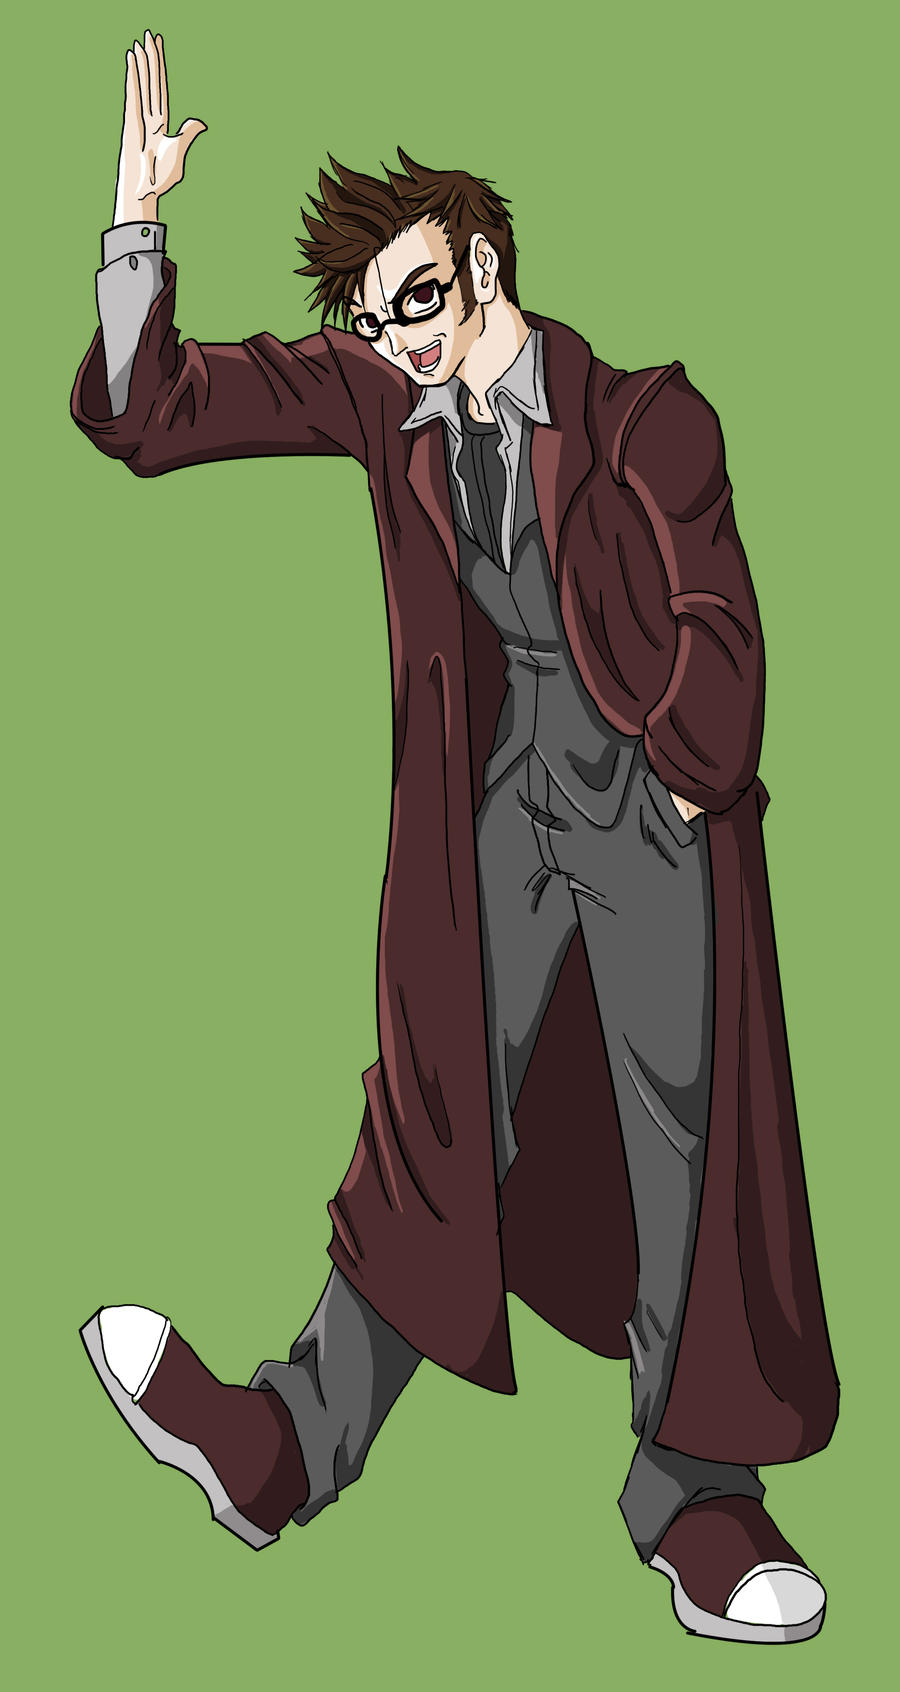 The 10th Doctor by Haseowolf